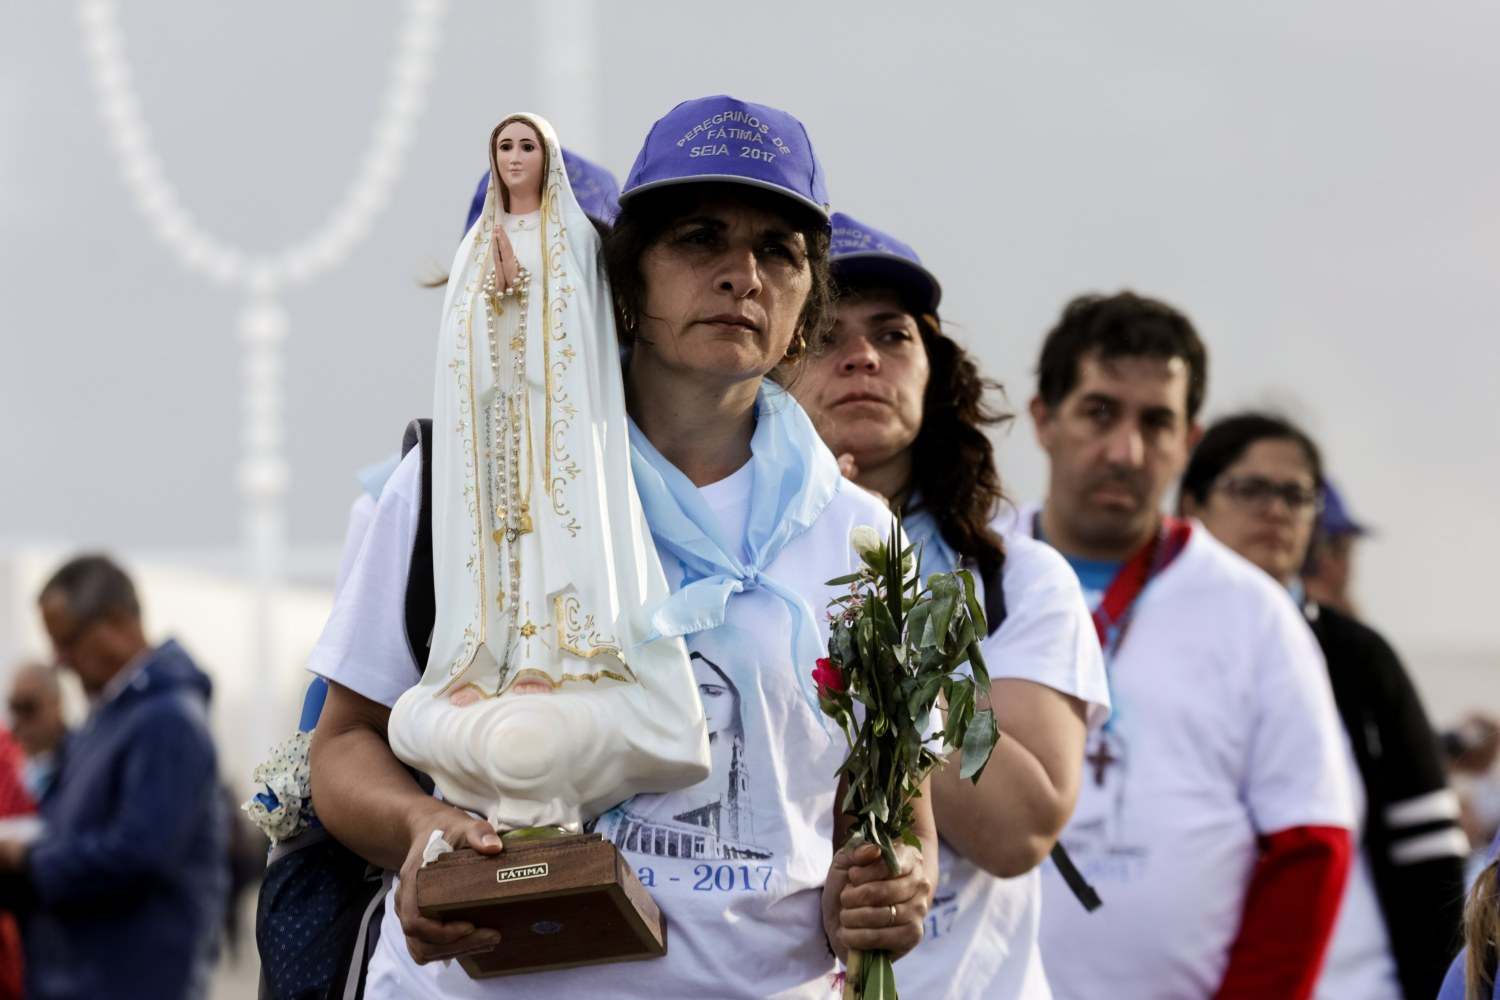 Catholic Church gets new children saints as Pope canonizes Fatima visionaries